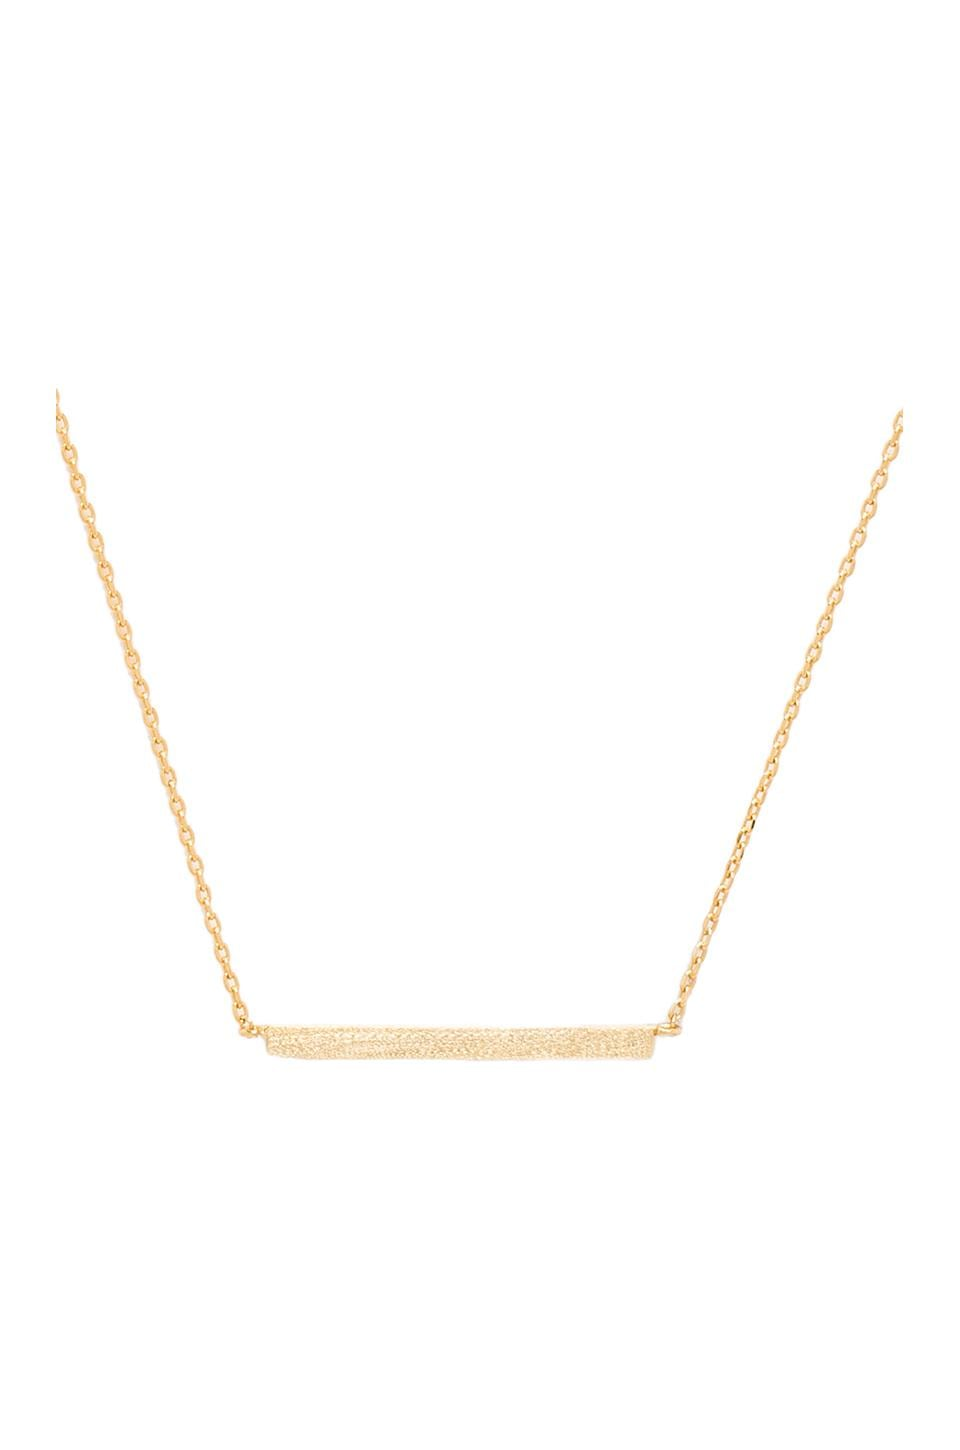 Stella and Bow Siouxsie Sioux Necklace in Gold